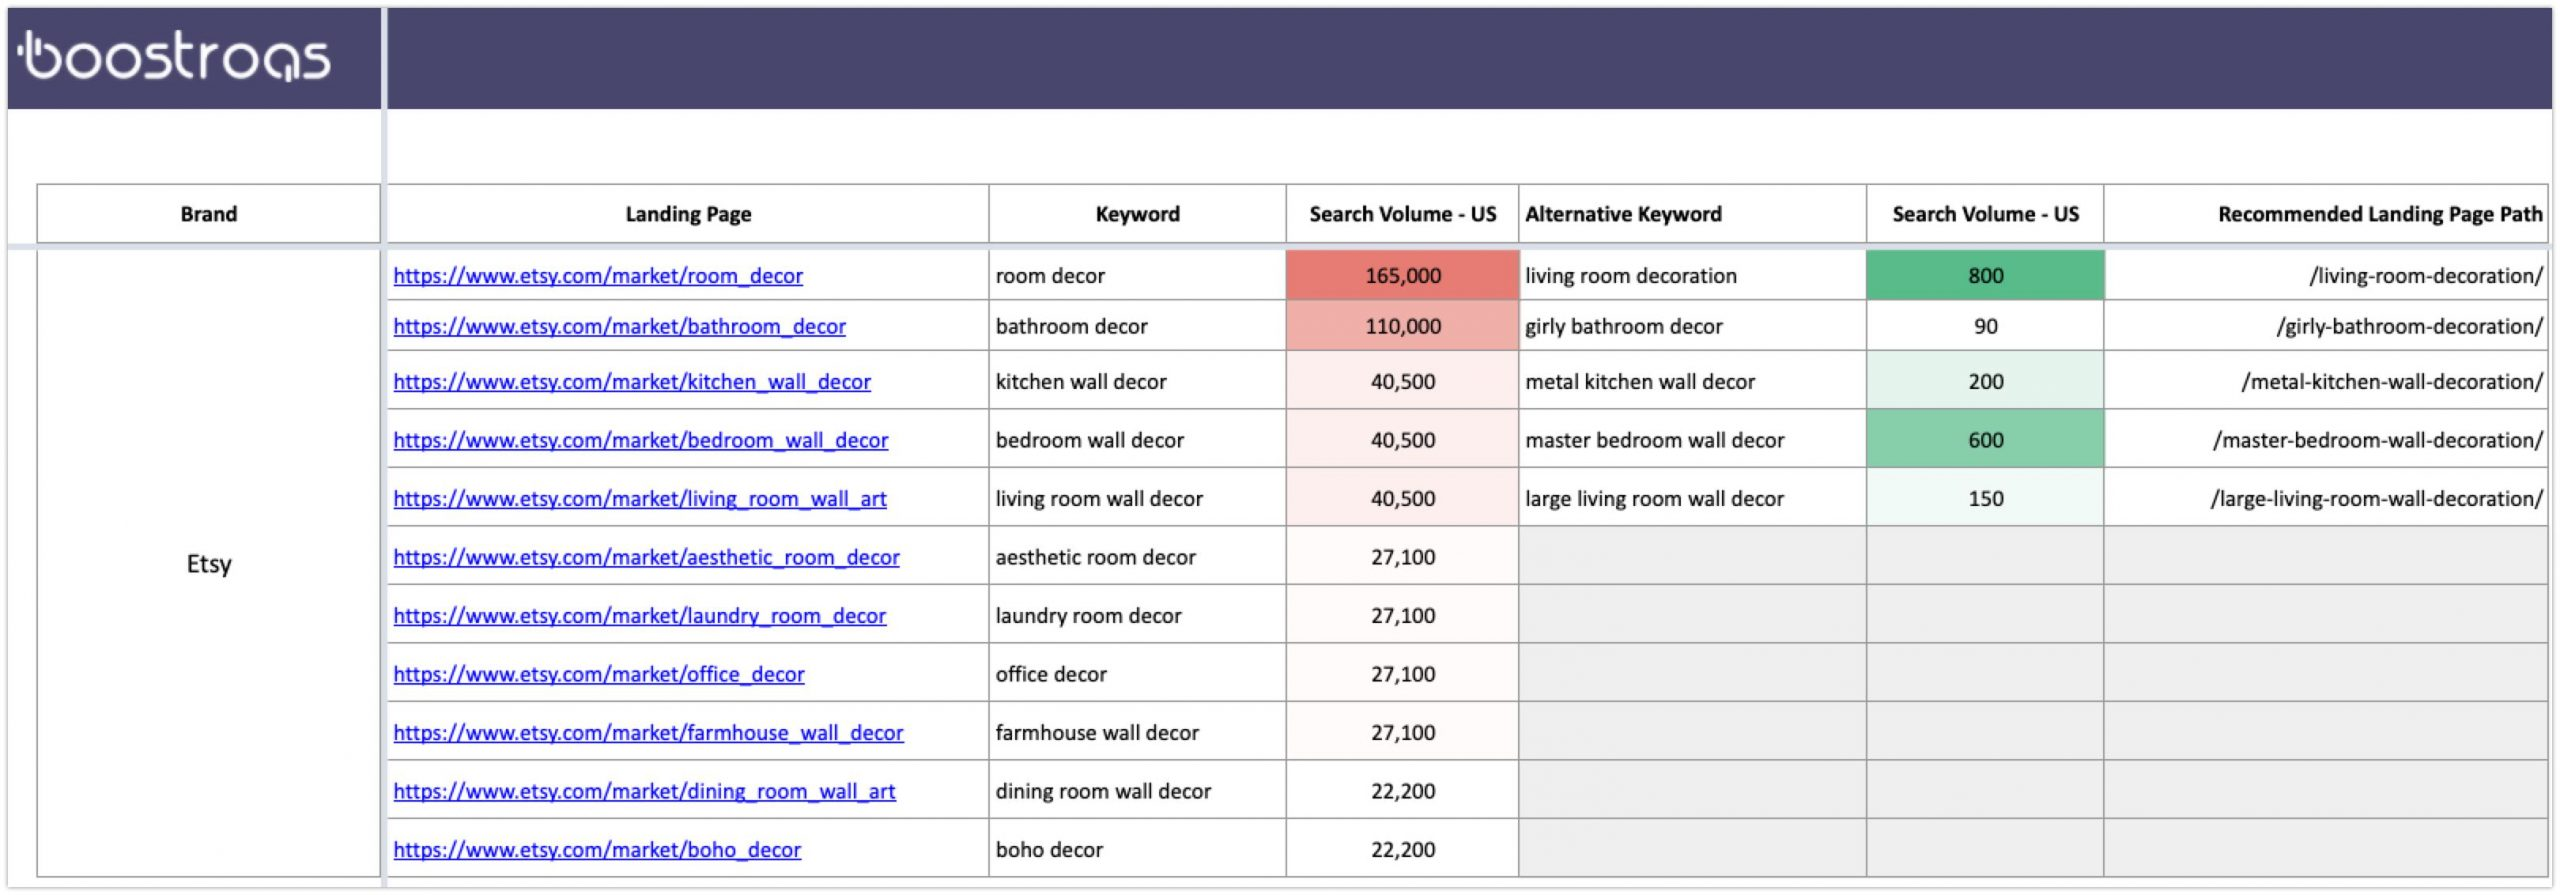 Alternative Long Tail Keyword Research Based on Competitor